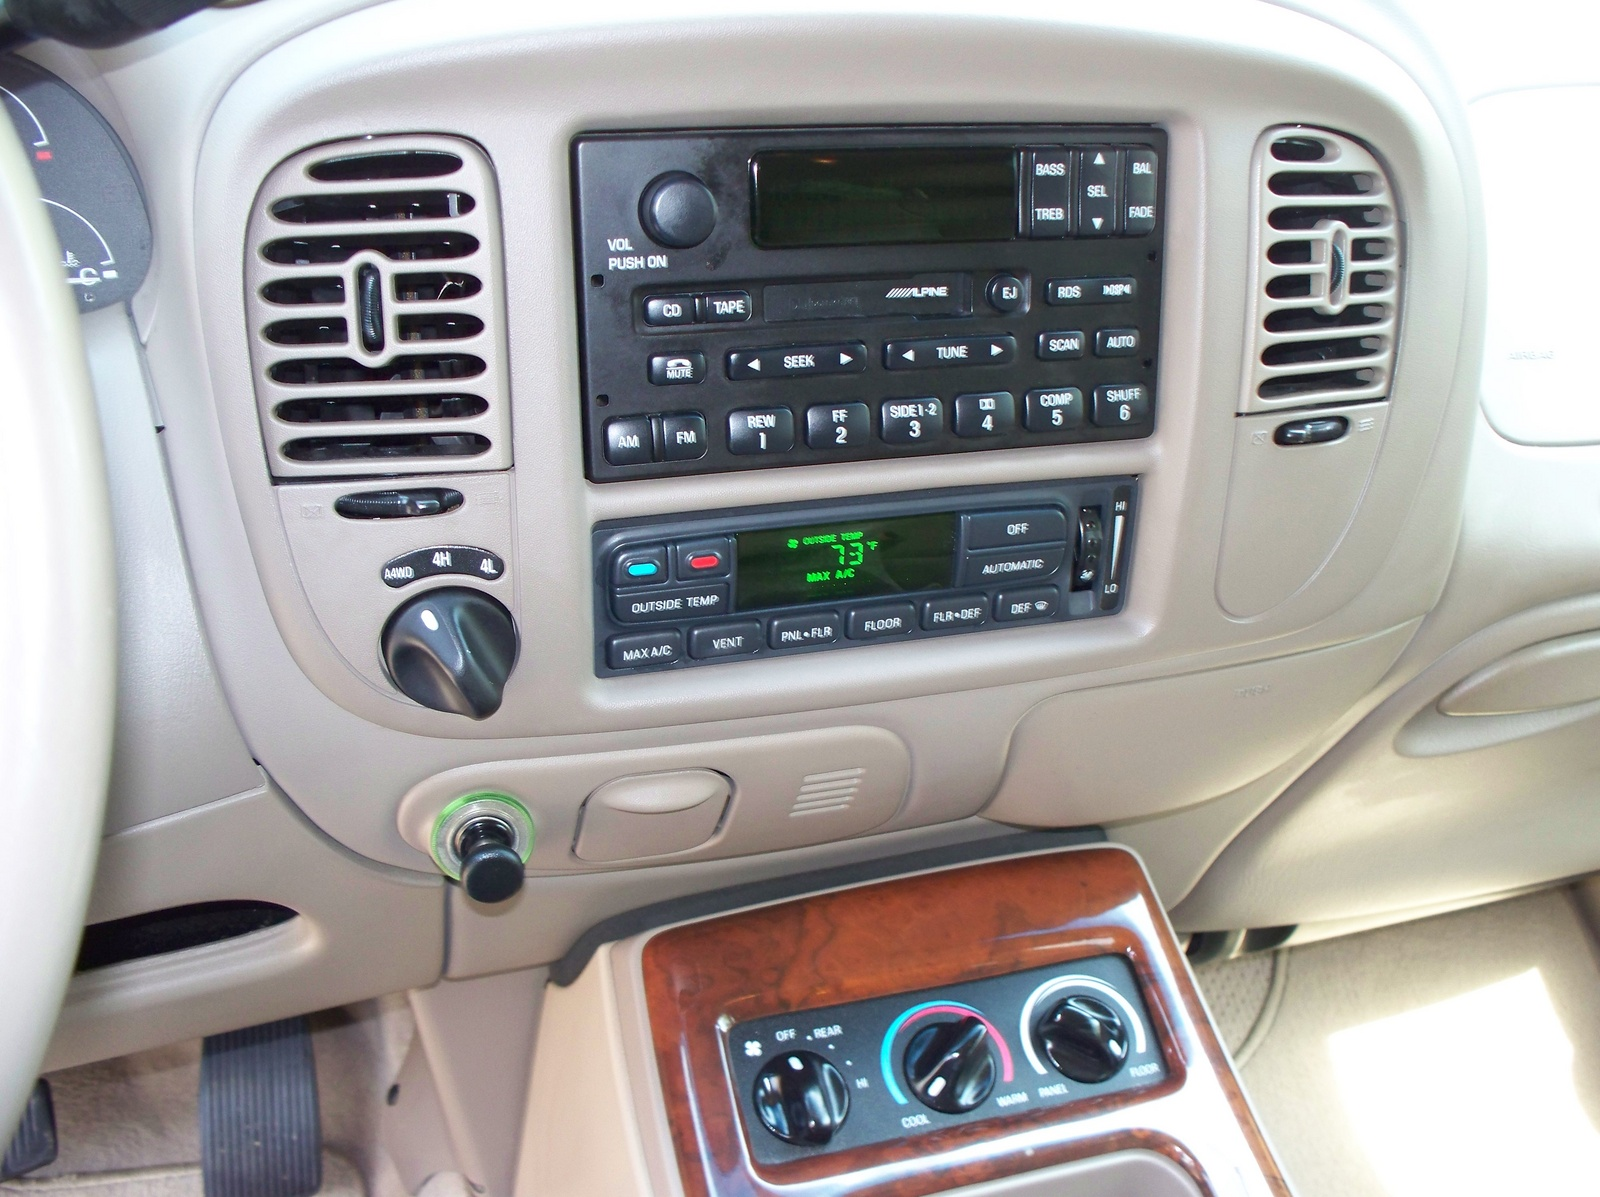 2002 lincoln navigator interior pictures cargurus 2000 lincoln navigator interior